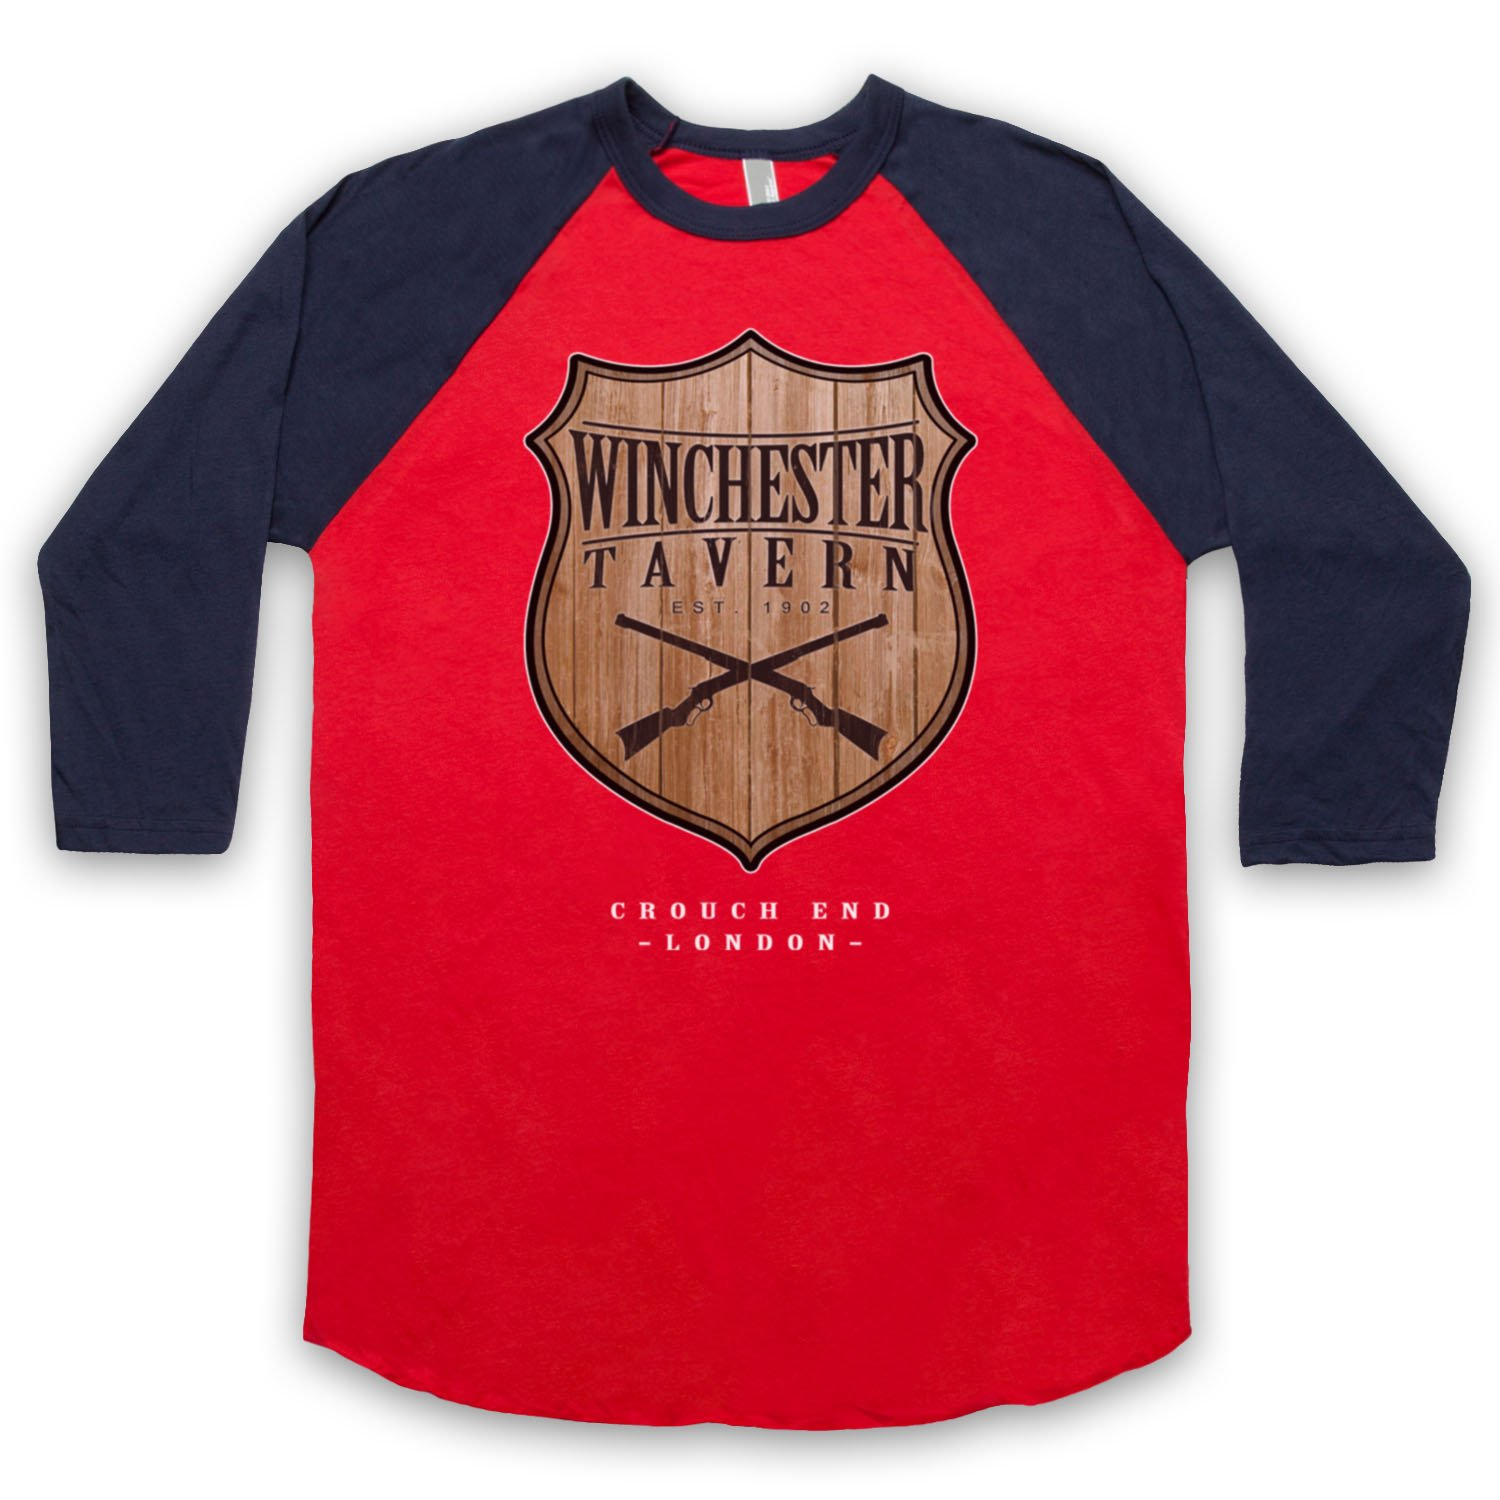 Inspired by Shaun Of The Dead Winchester Tavern Unofficial 3/4 Sleeve Retro Baseball Tee